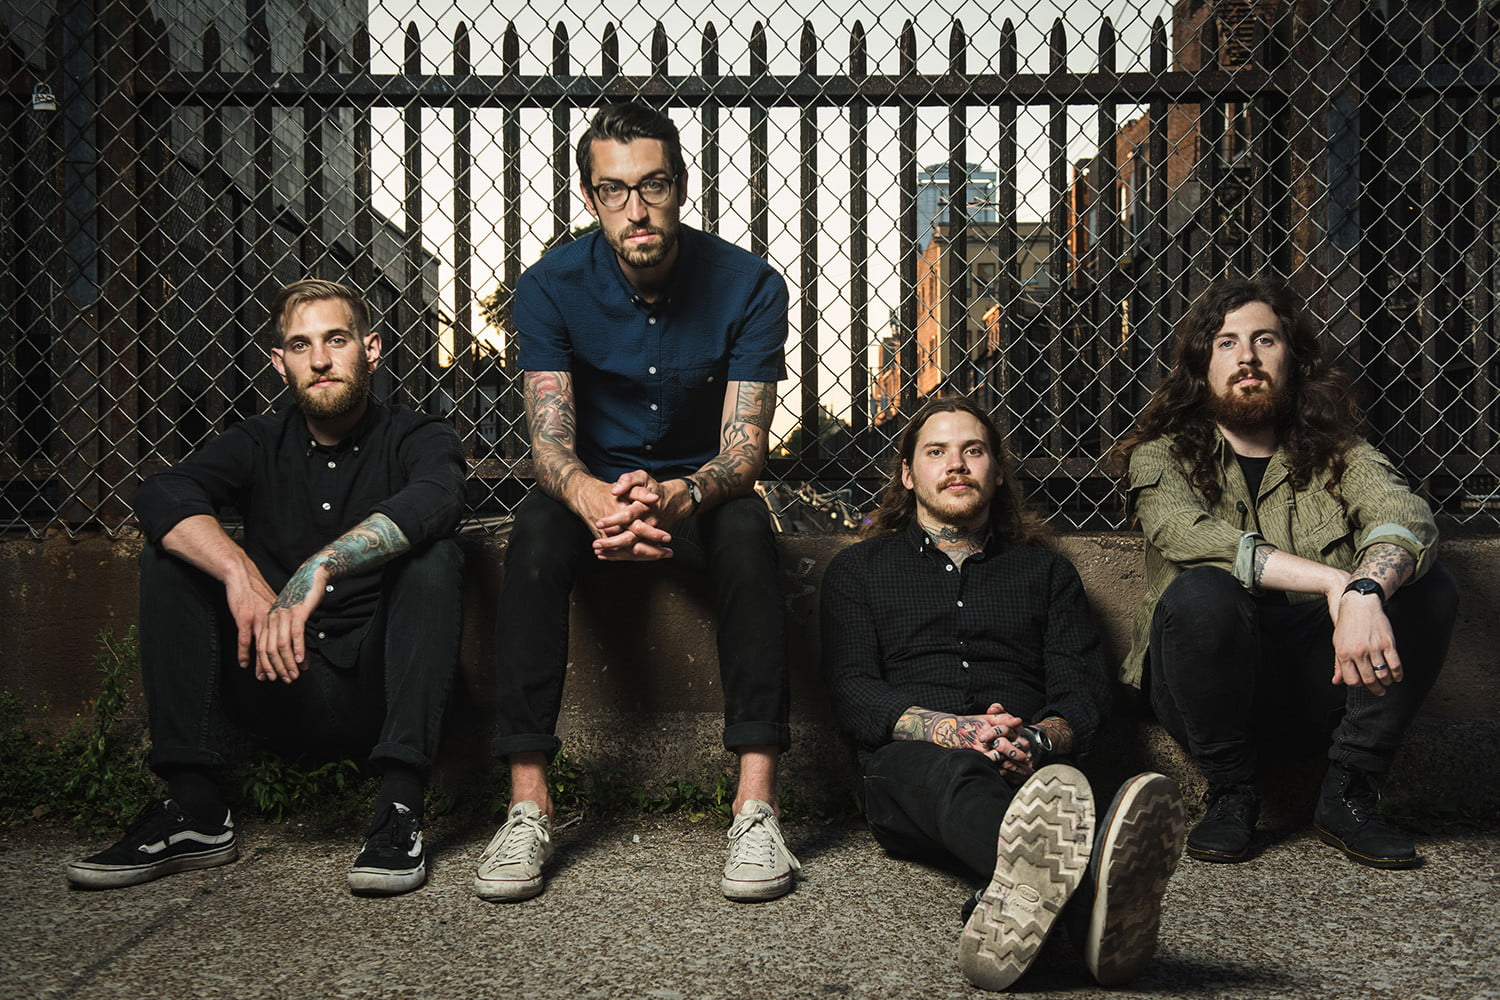 dt exclusive interview with the devil wears prada  2016 photo by anthony barlich